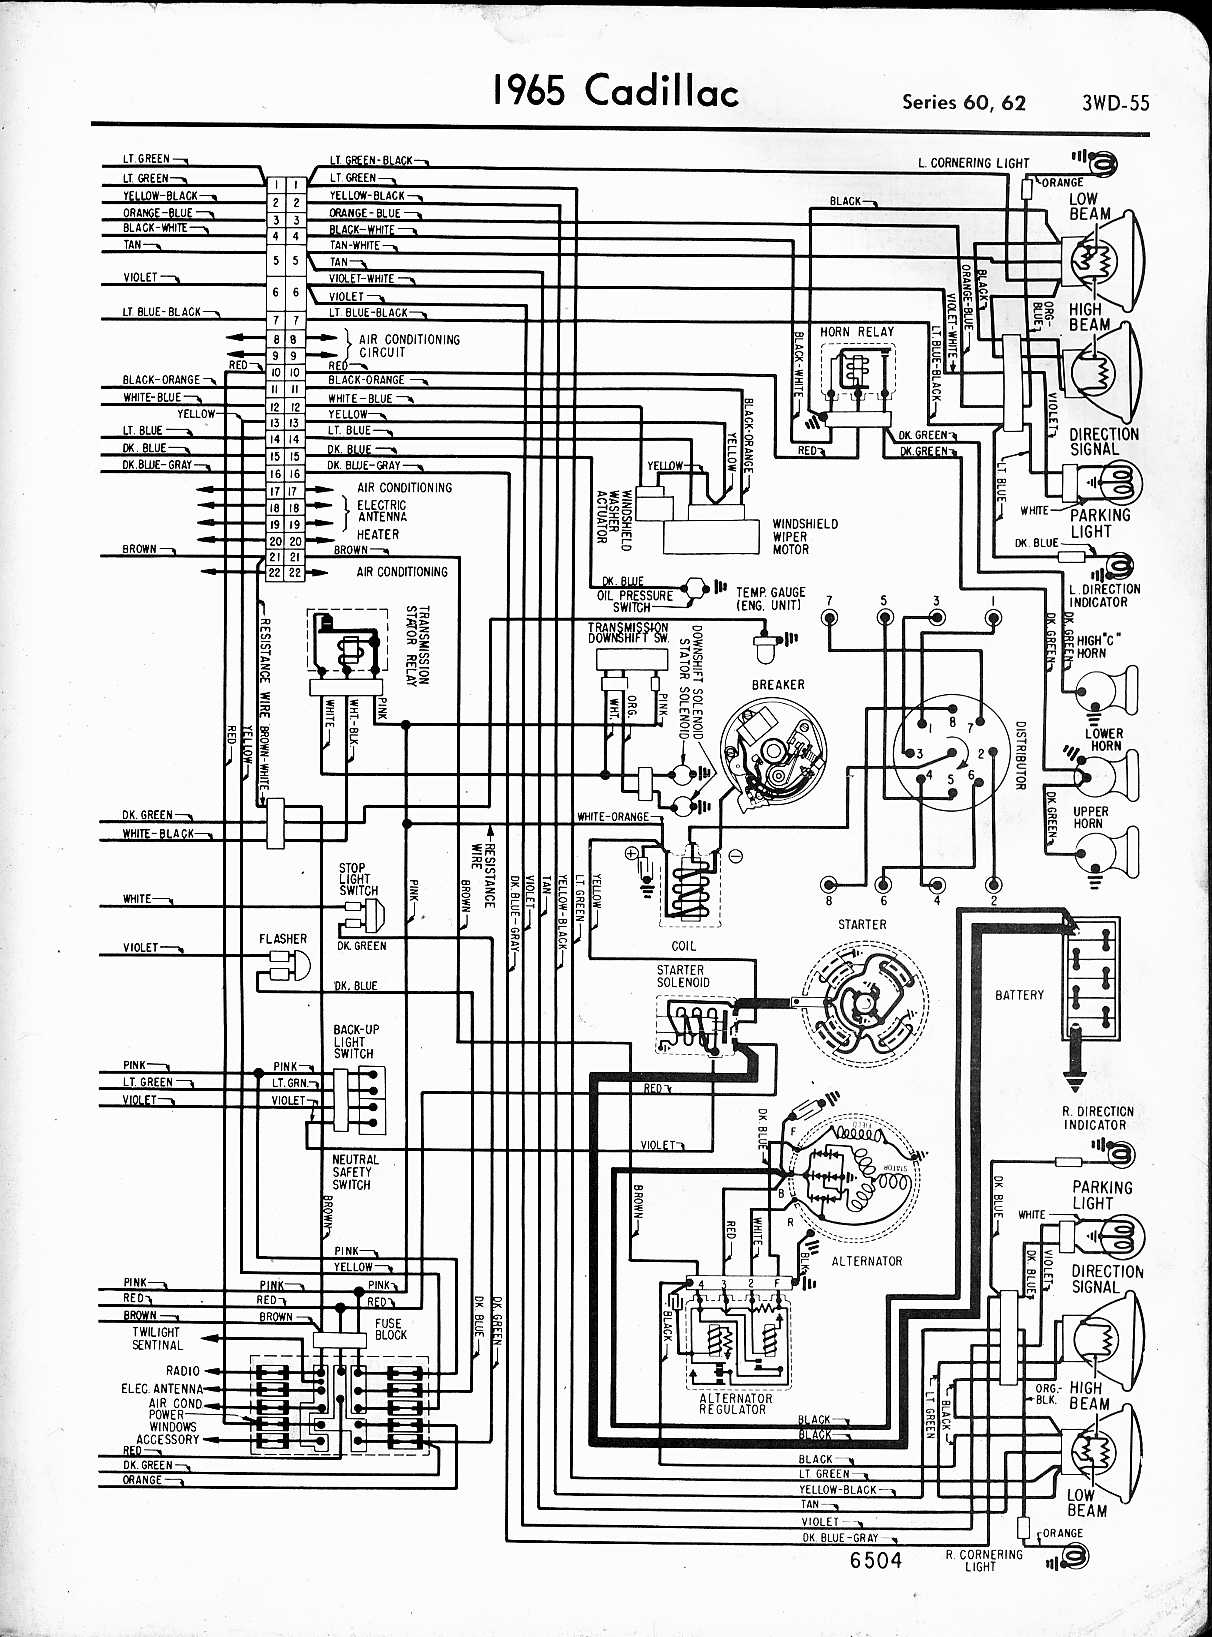 Escalade Wiring Computer Free Download Diagram Schematic Cadillac Schematics For You